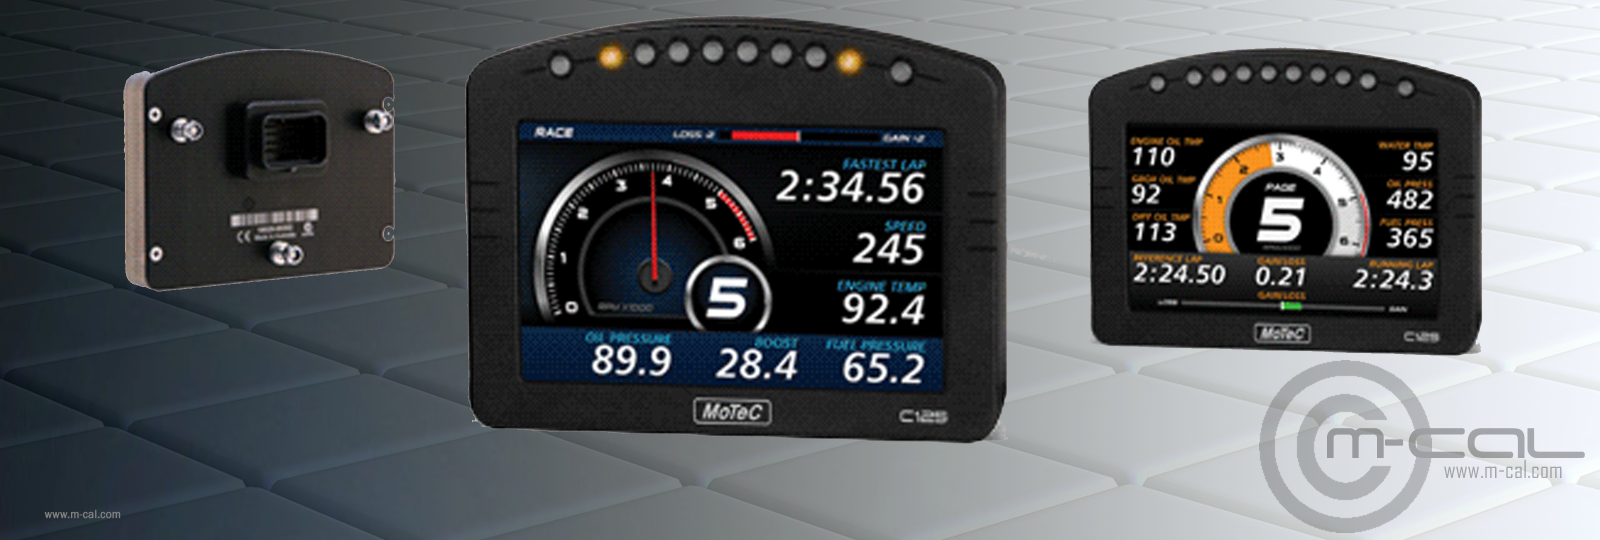 MoTeC Dash Displays & Data Logging